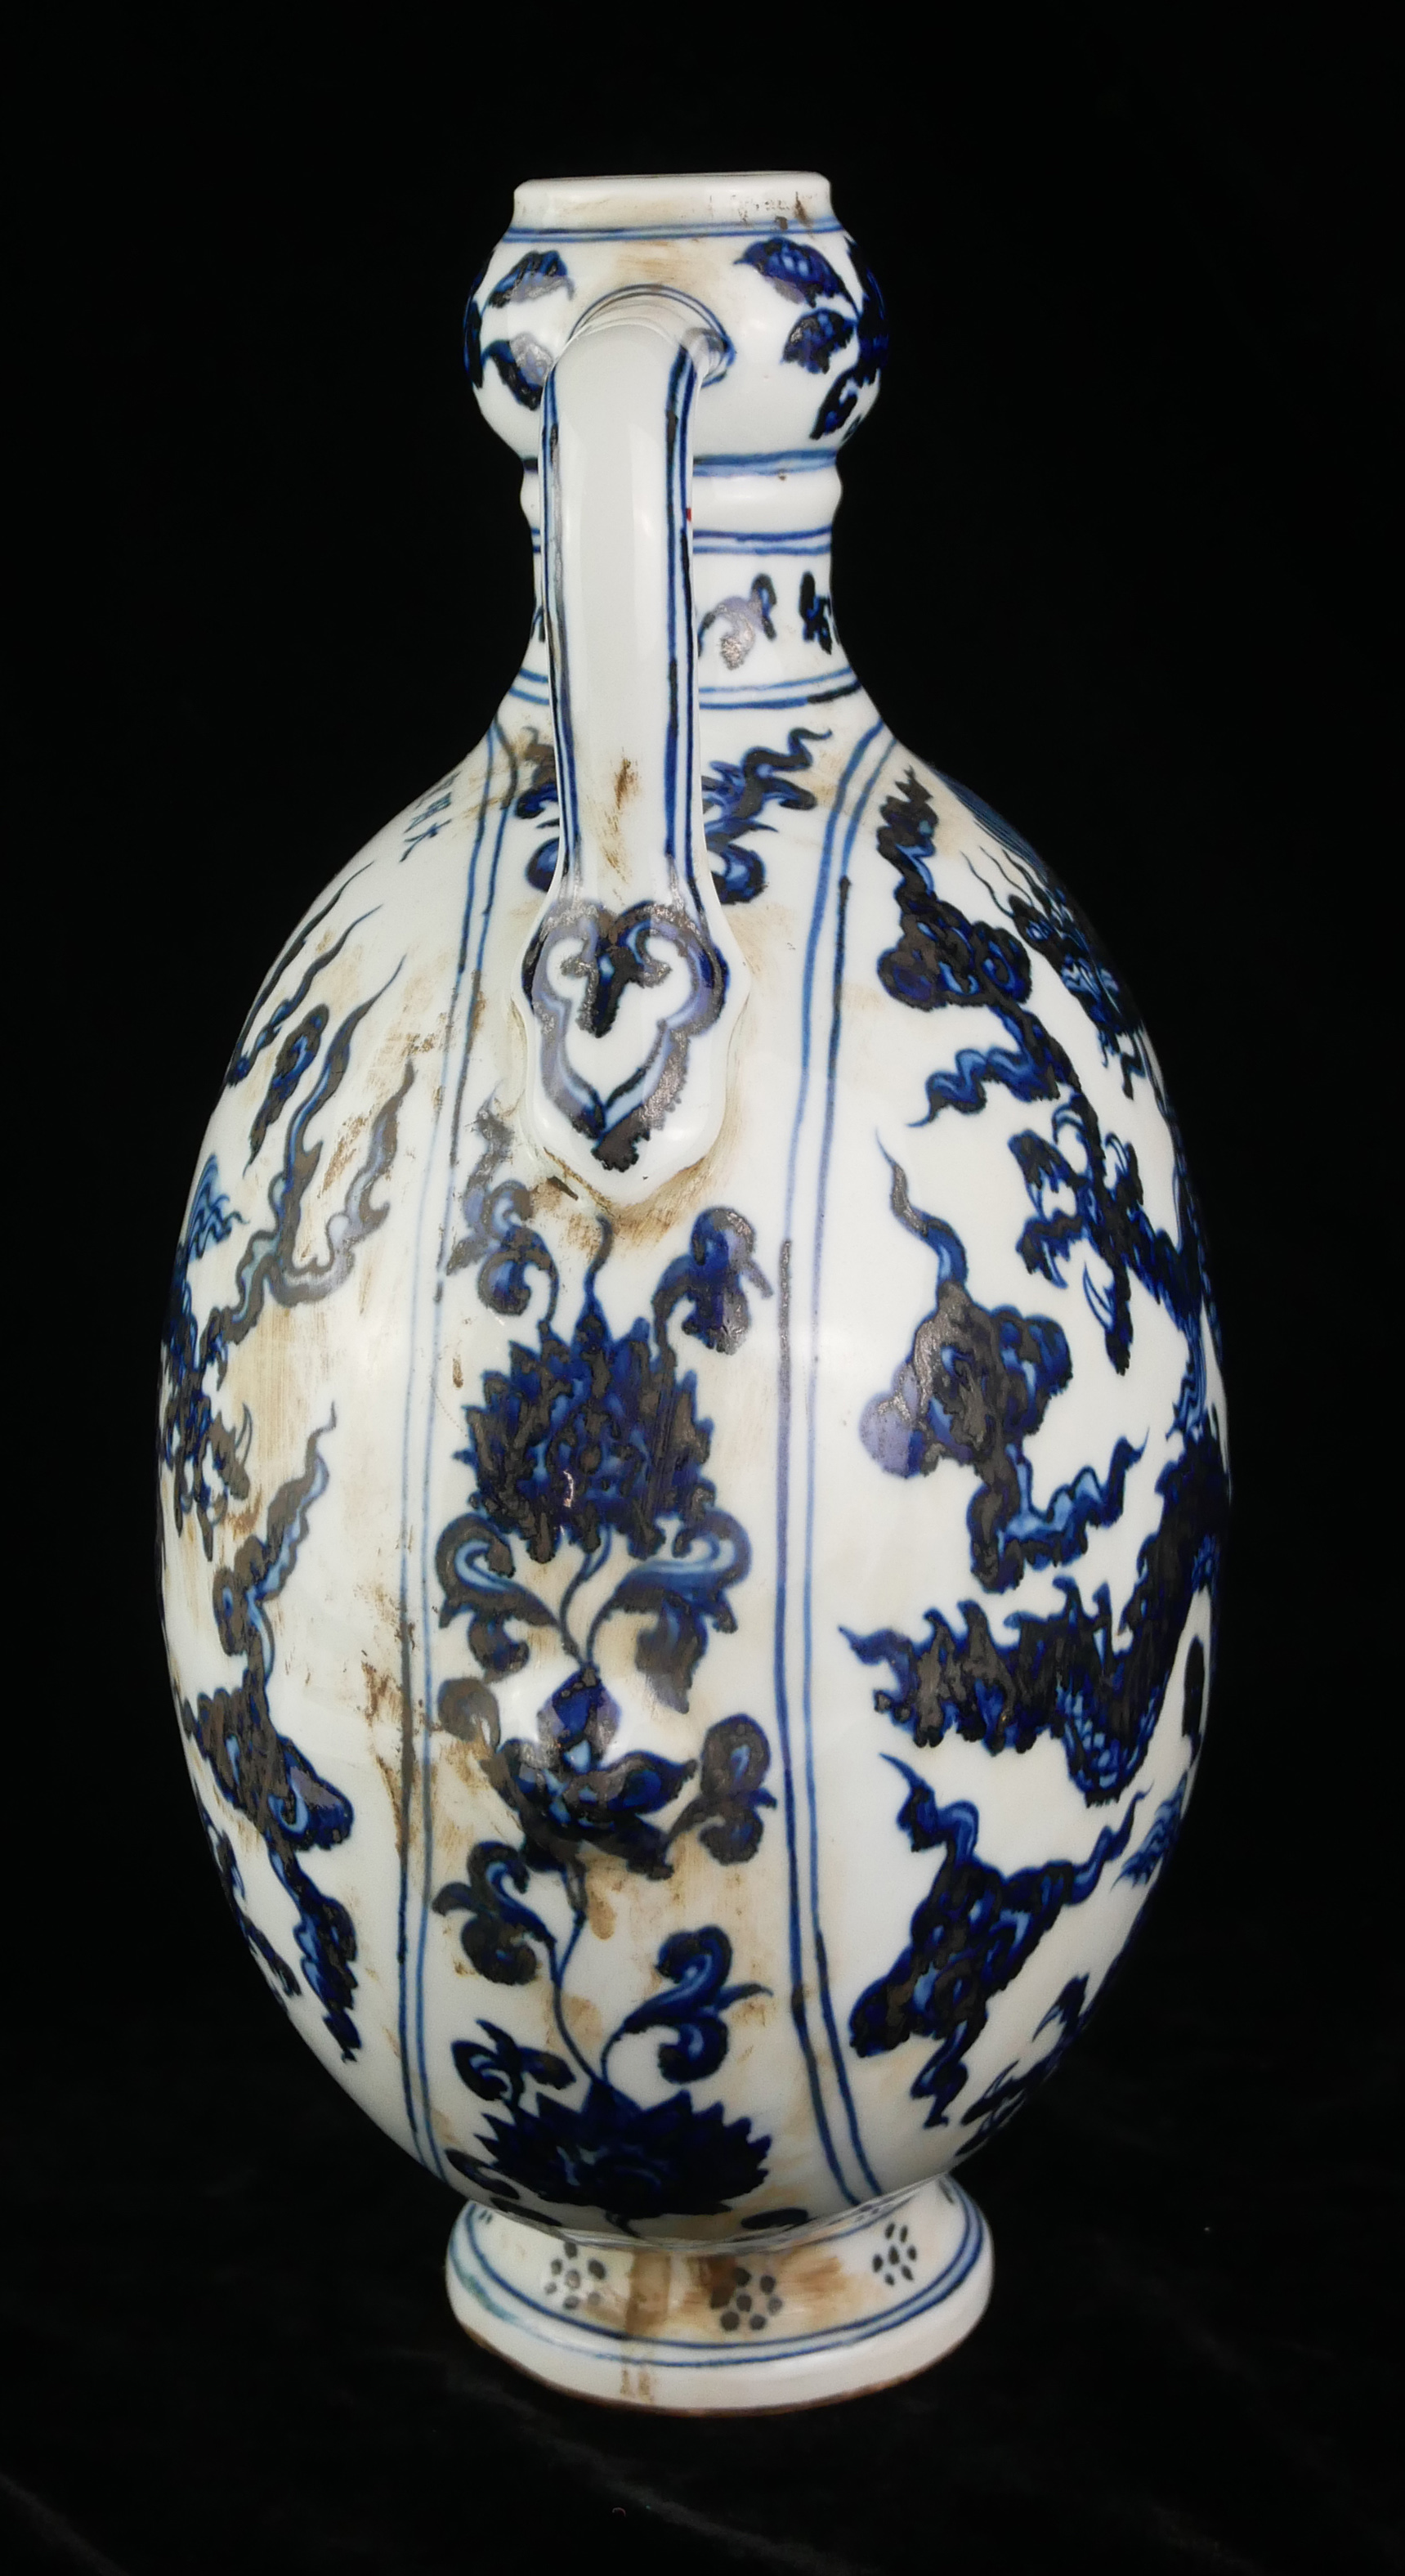 A 20TH CENTURY CHINESE BLUE AND WHITE PORCELAIN MOON FLASK Both sides decorated with Imperial dragon - Image 2 of 4